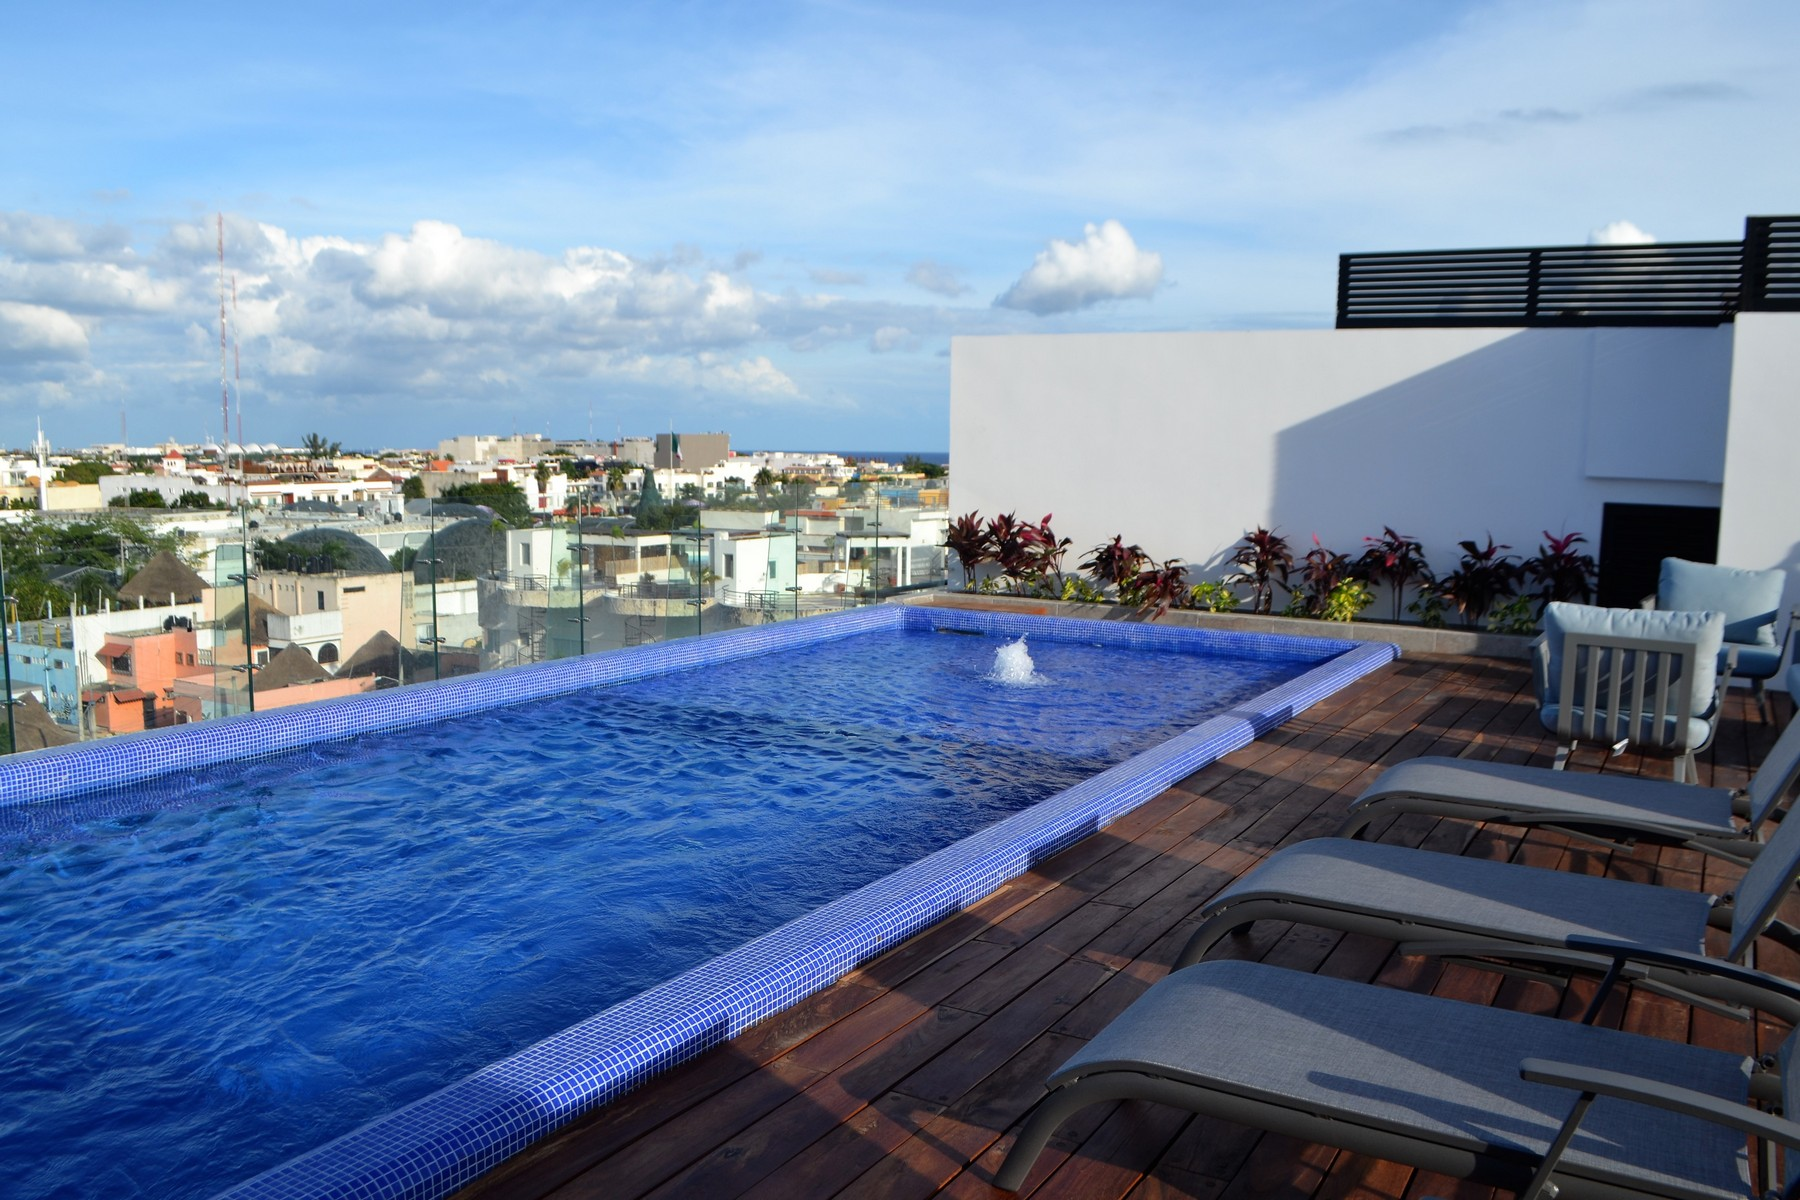 Condominium for Sale at SPACIOUS APARTMENTS IN LUXURIOUS AND WELL LOCATED NEW BUILDING Spacious apartments in luxurious and well located new building 6th North Street Playa Del Carmen, Quintana Roo 77710 Mexico